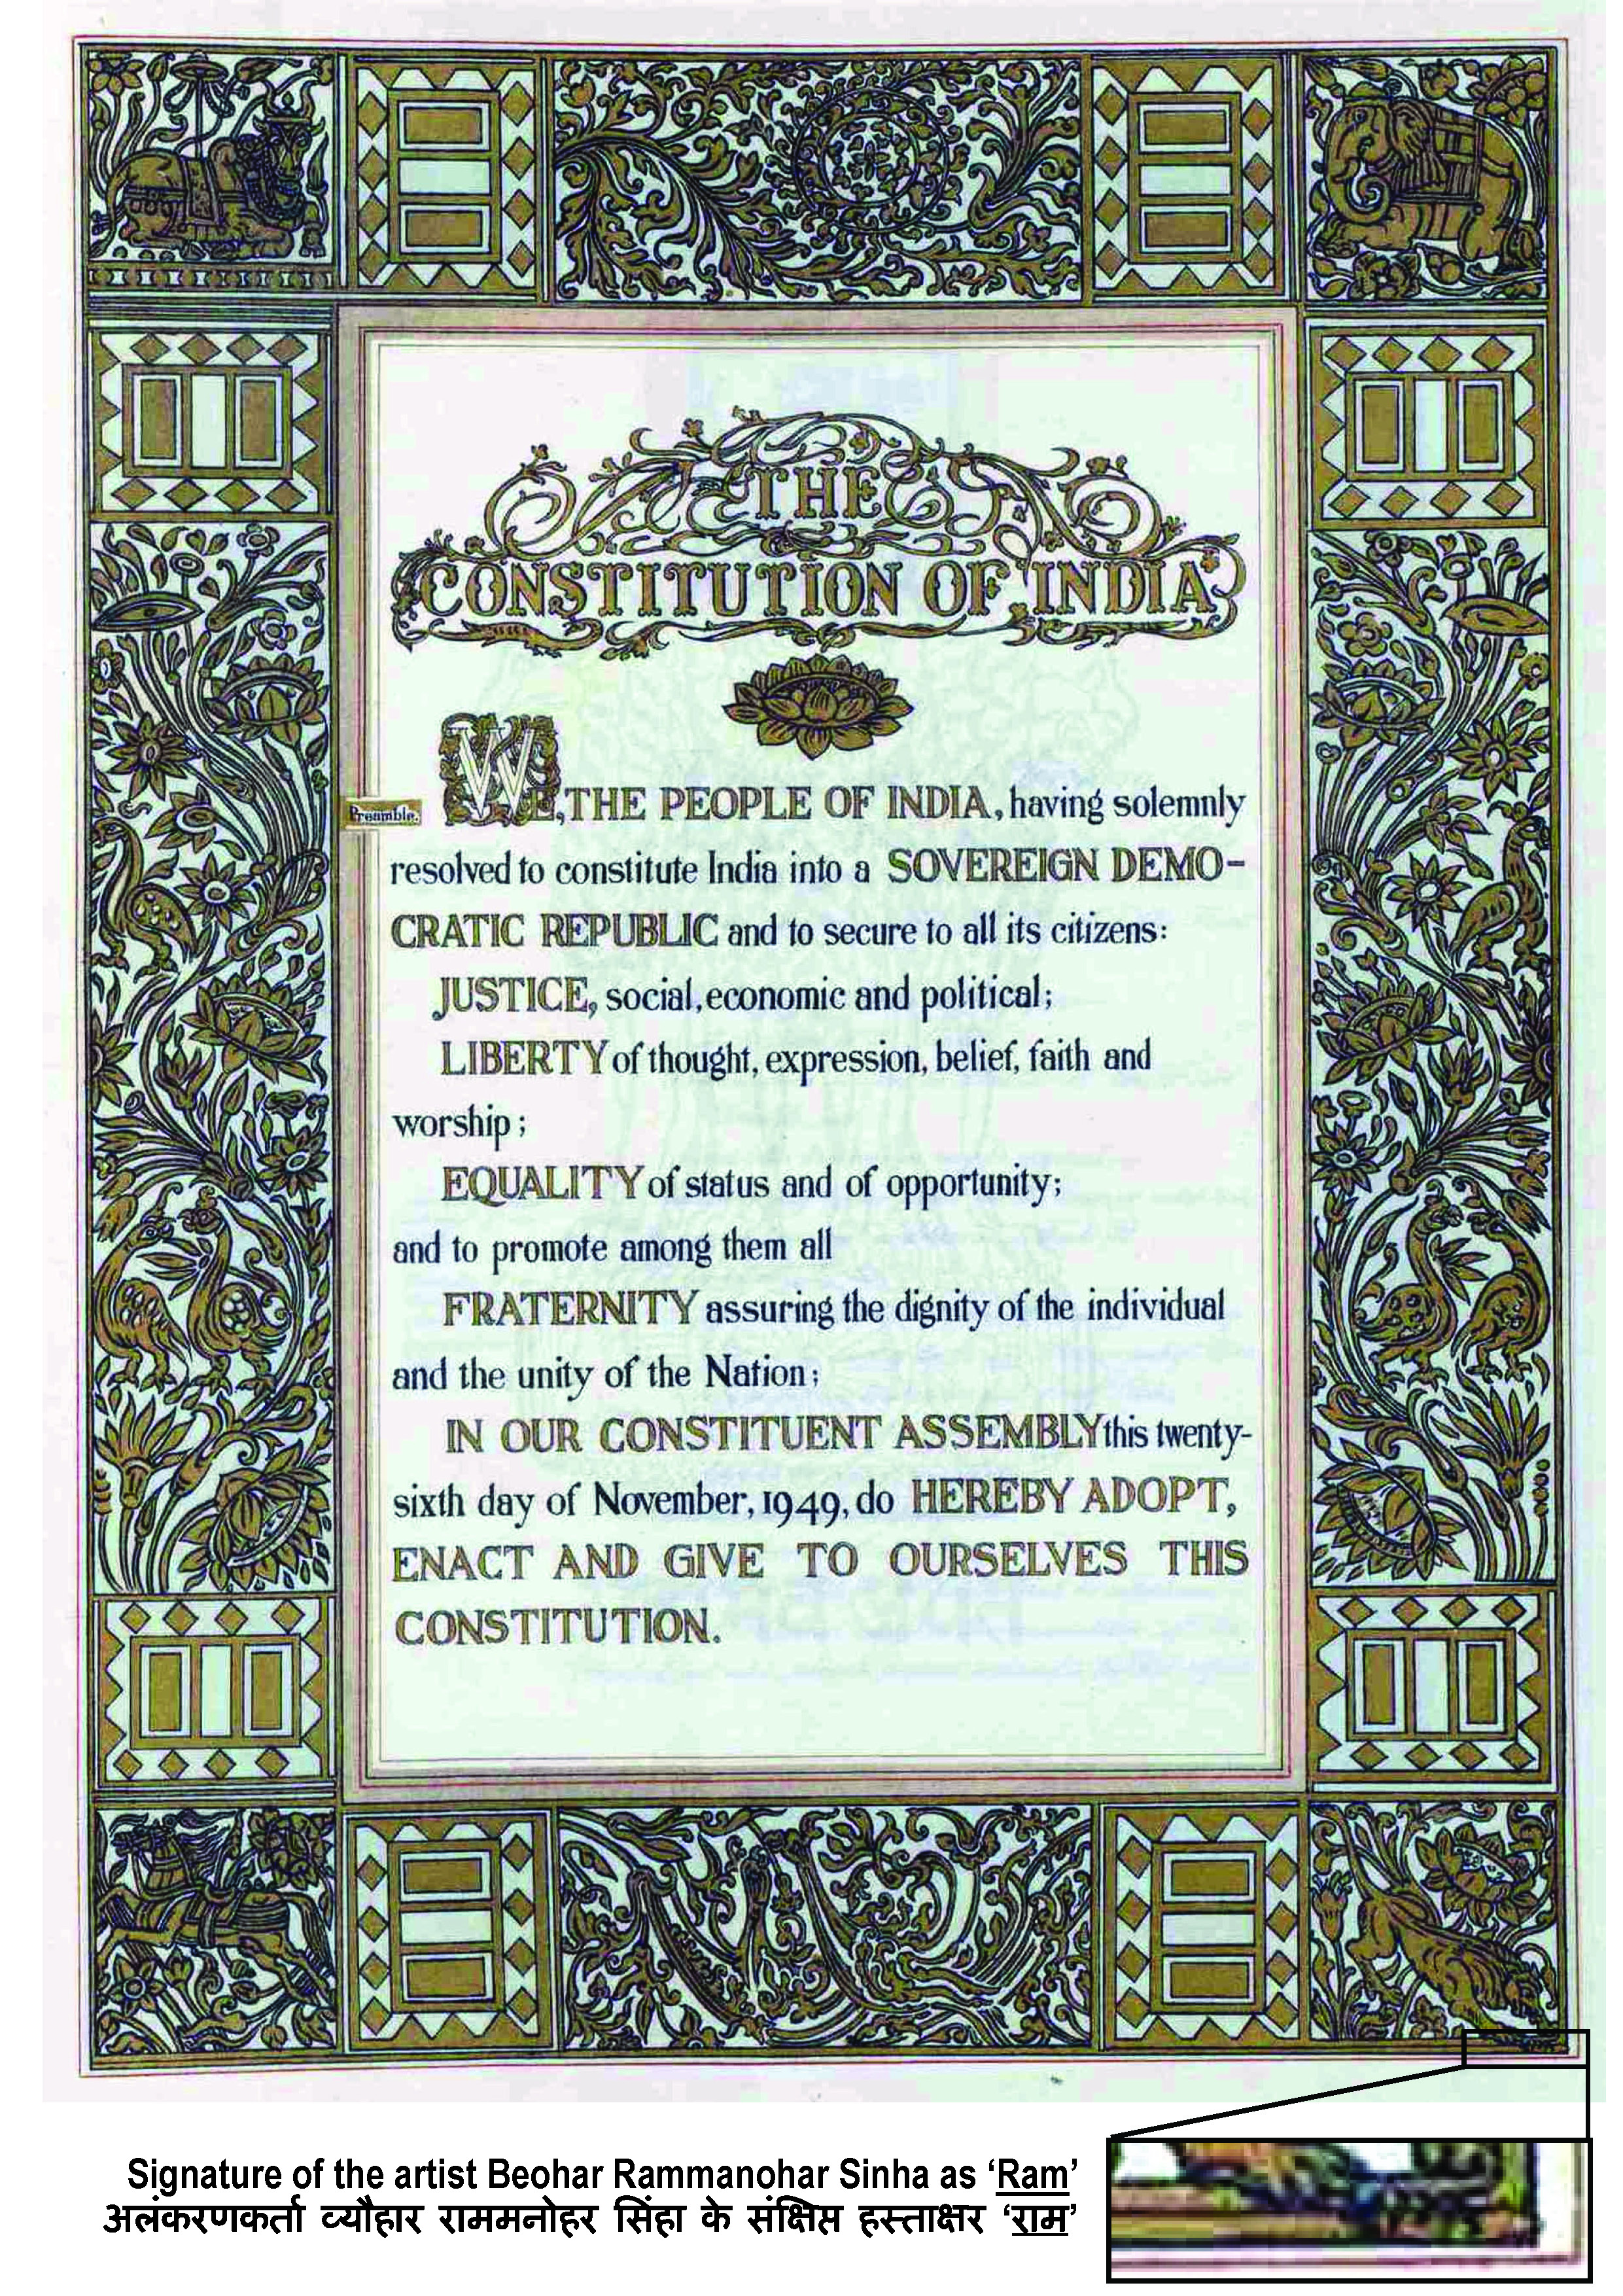 The Constitution of India is the longest written constitution in the world